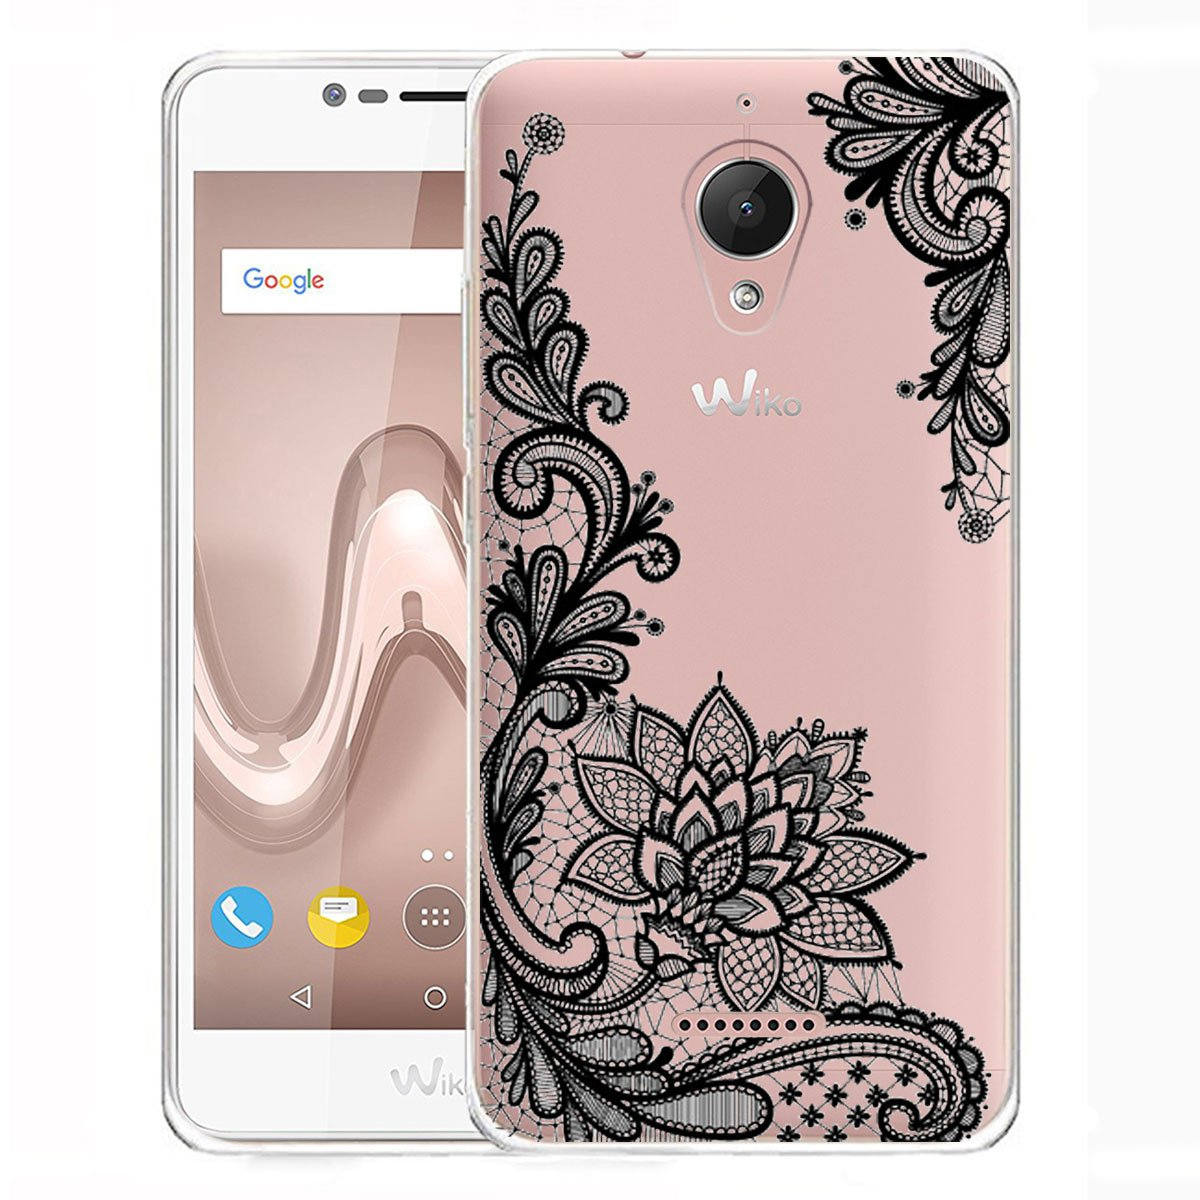 Amazon.com: Case for Wiko Tommy 2 (5.0